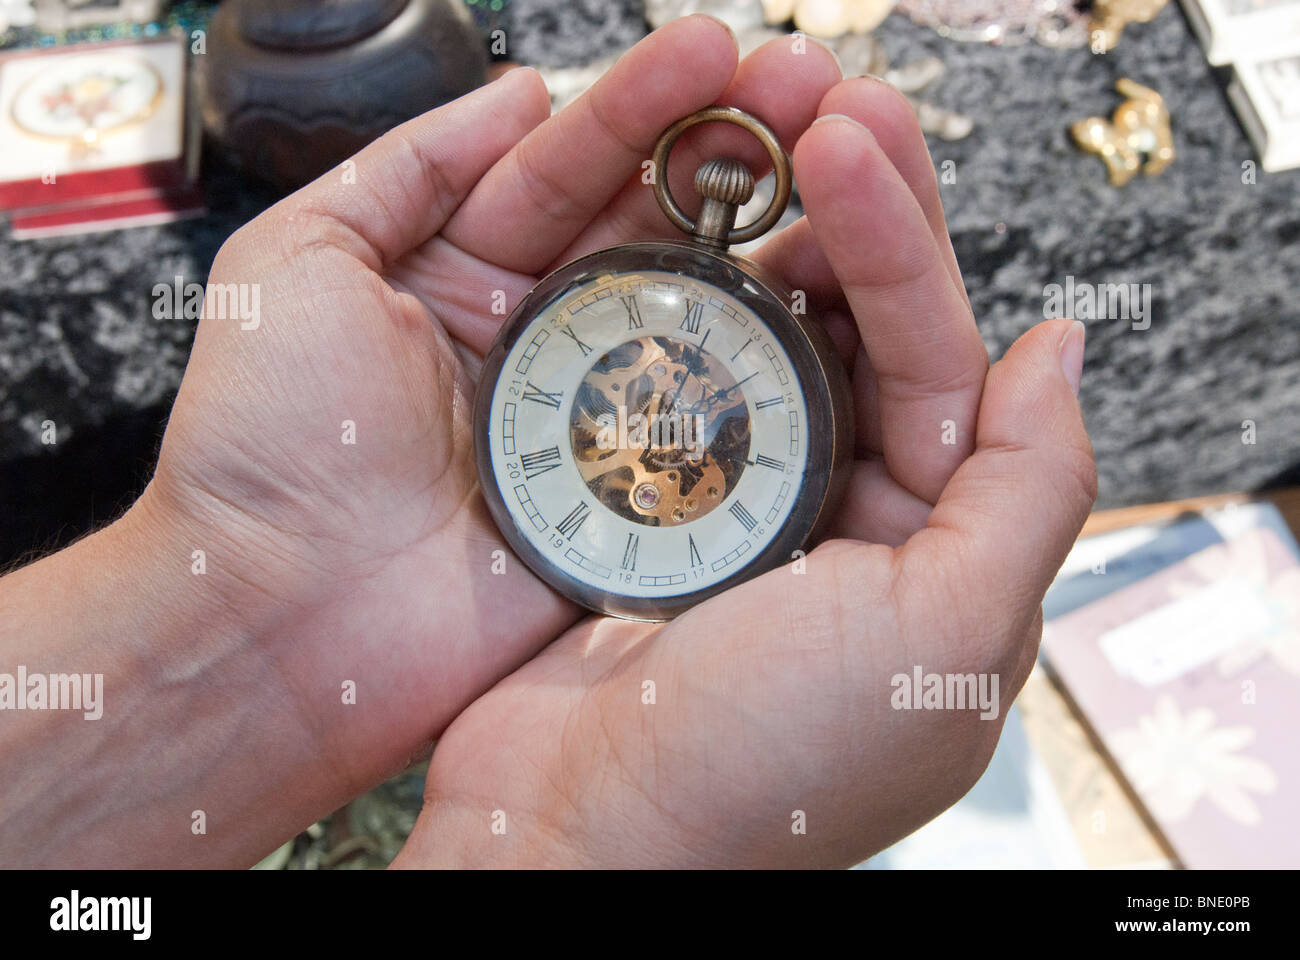 FEMALE HAND HOLDING THE ANTIQUE WATCH - Stock Image